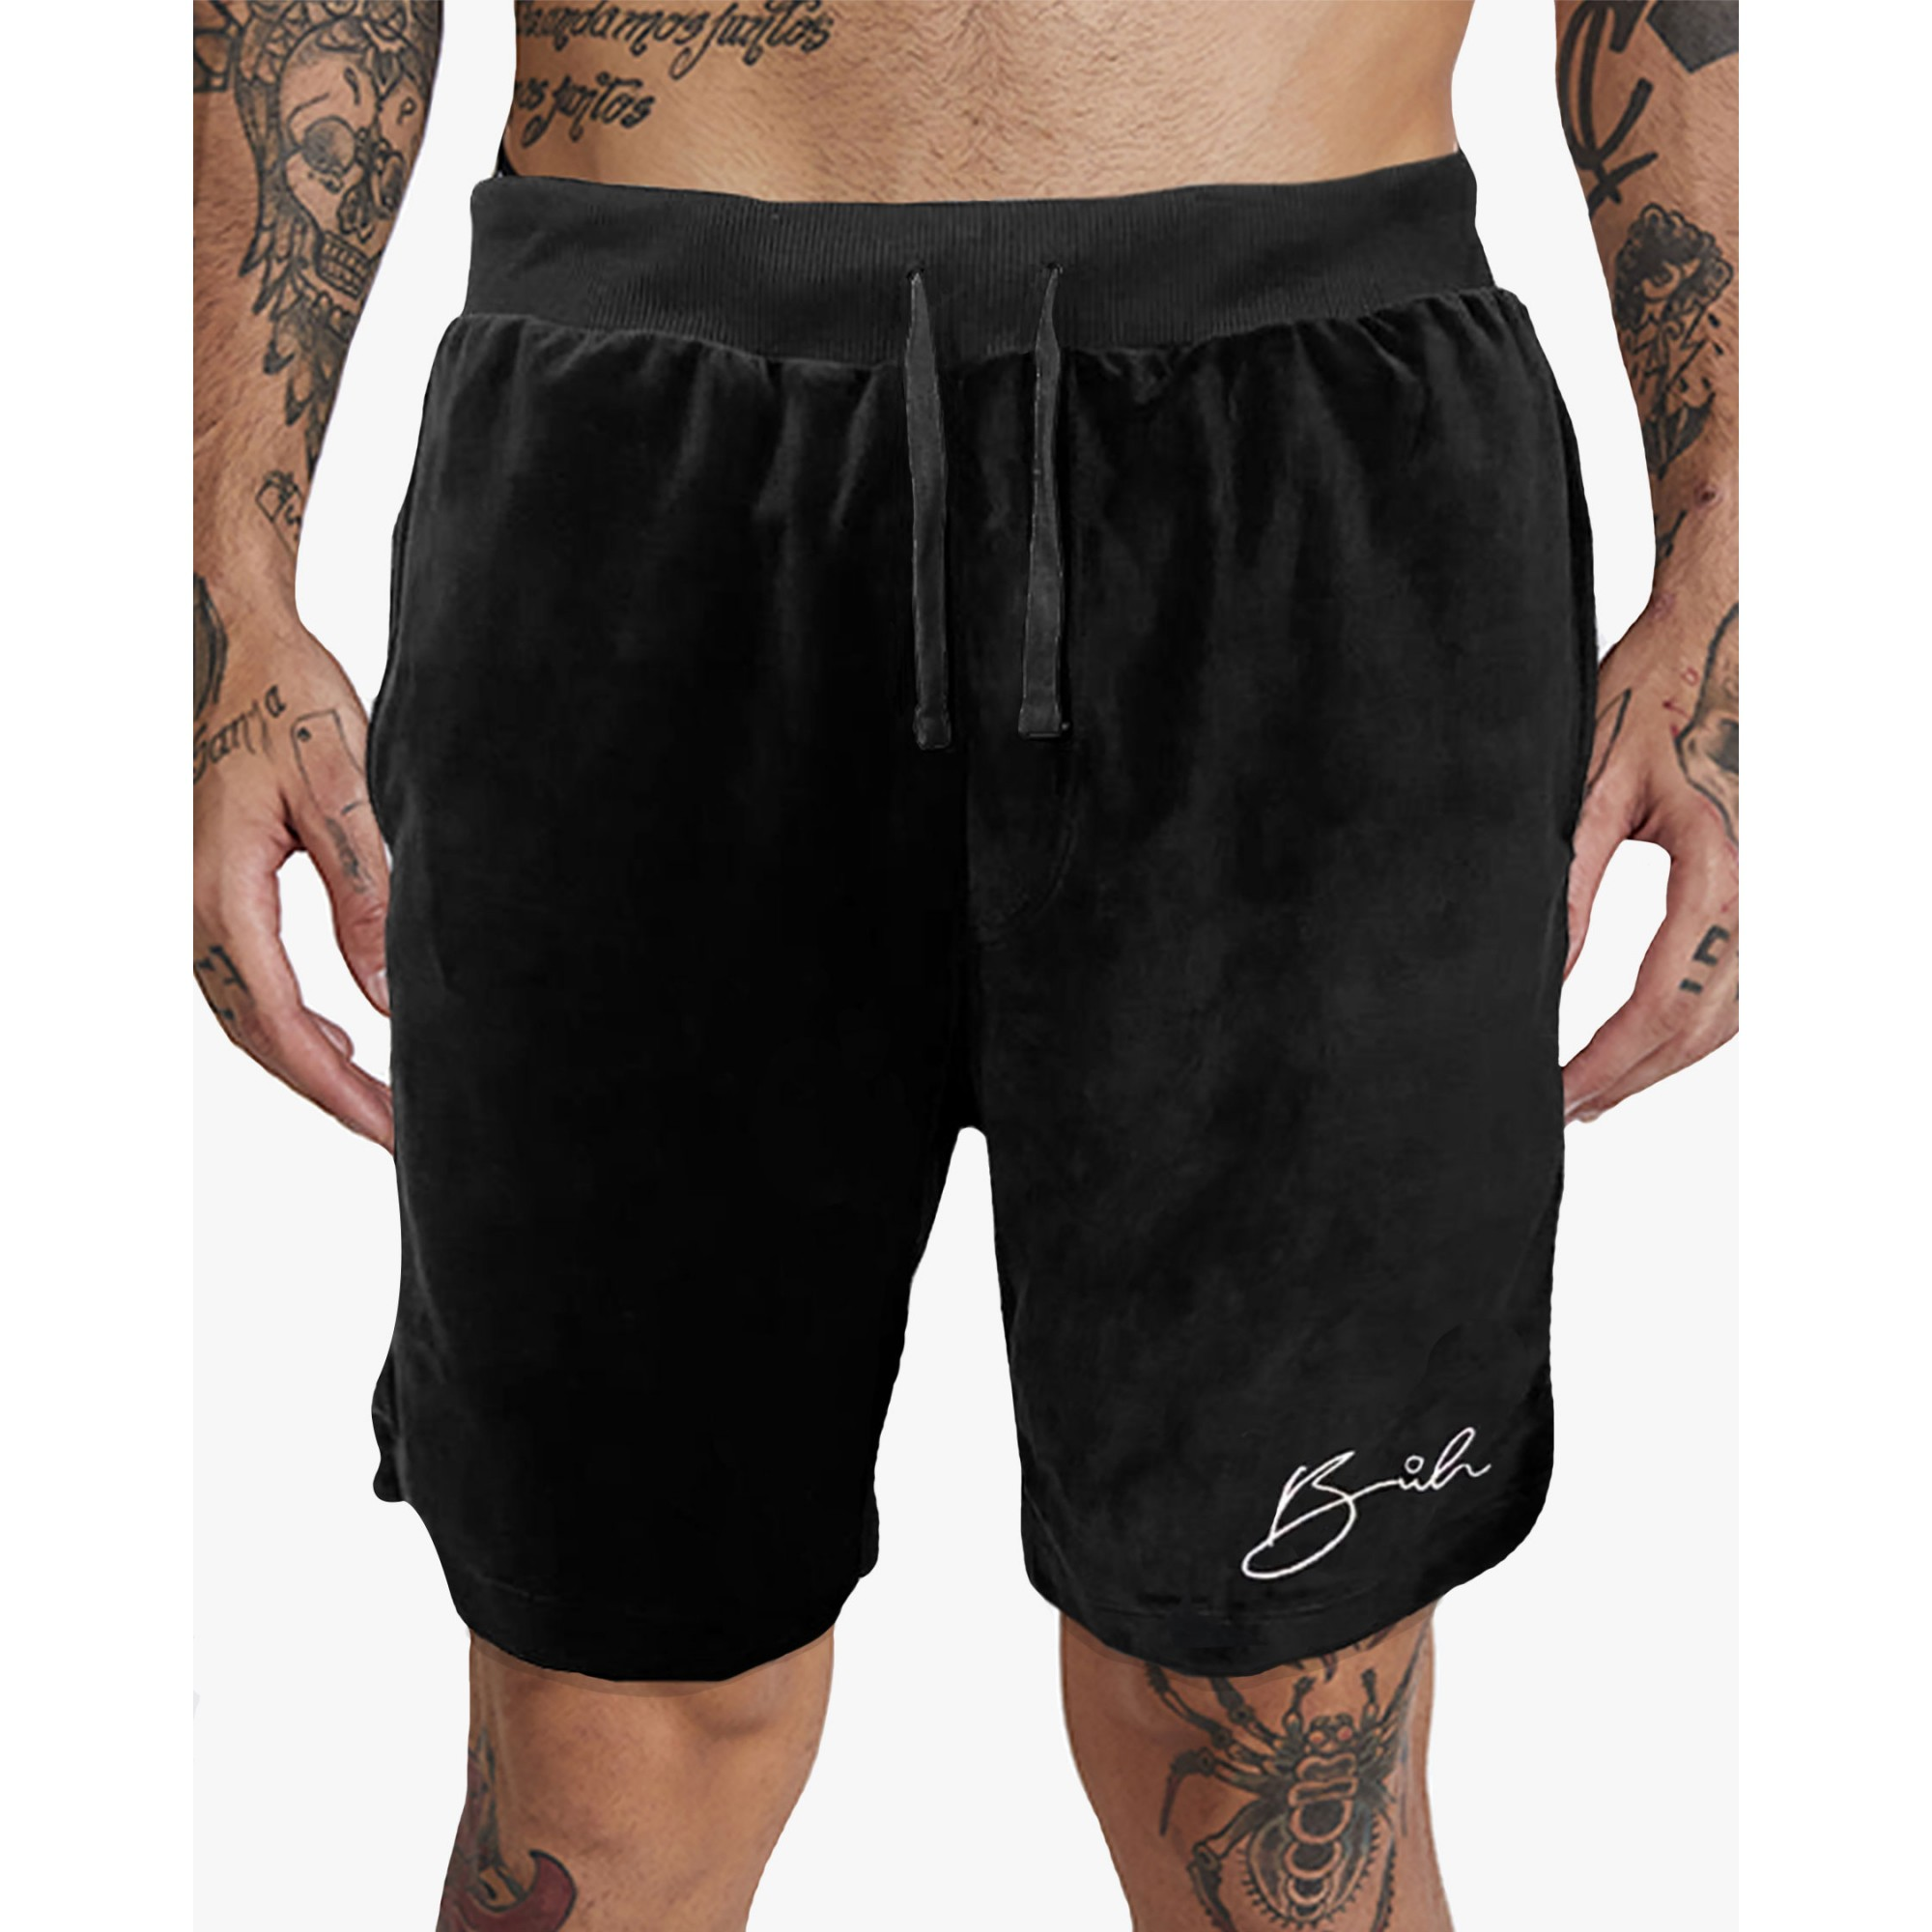 Bermuda Buh Bordado Plush Black